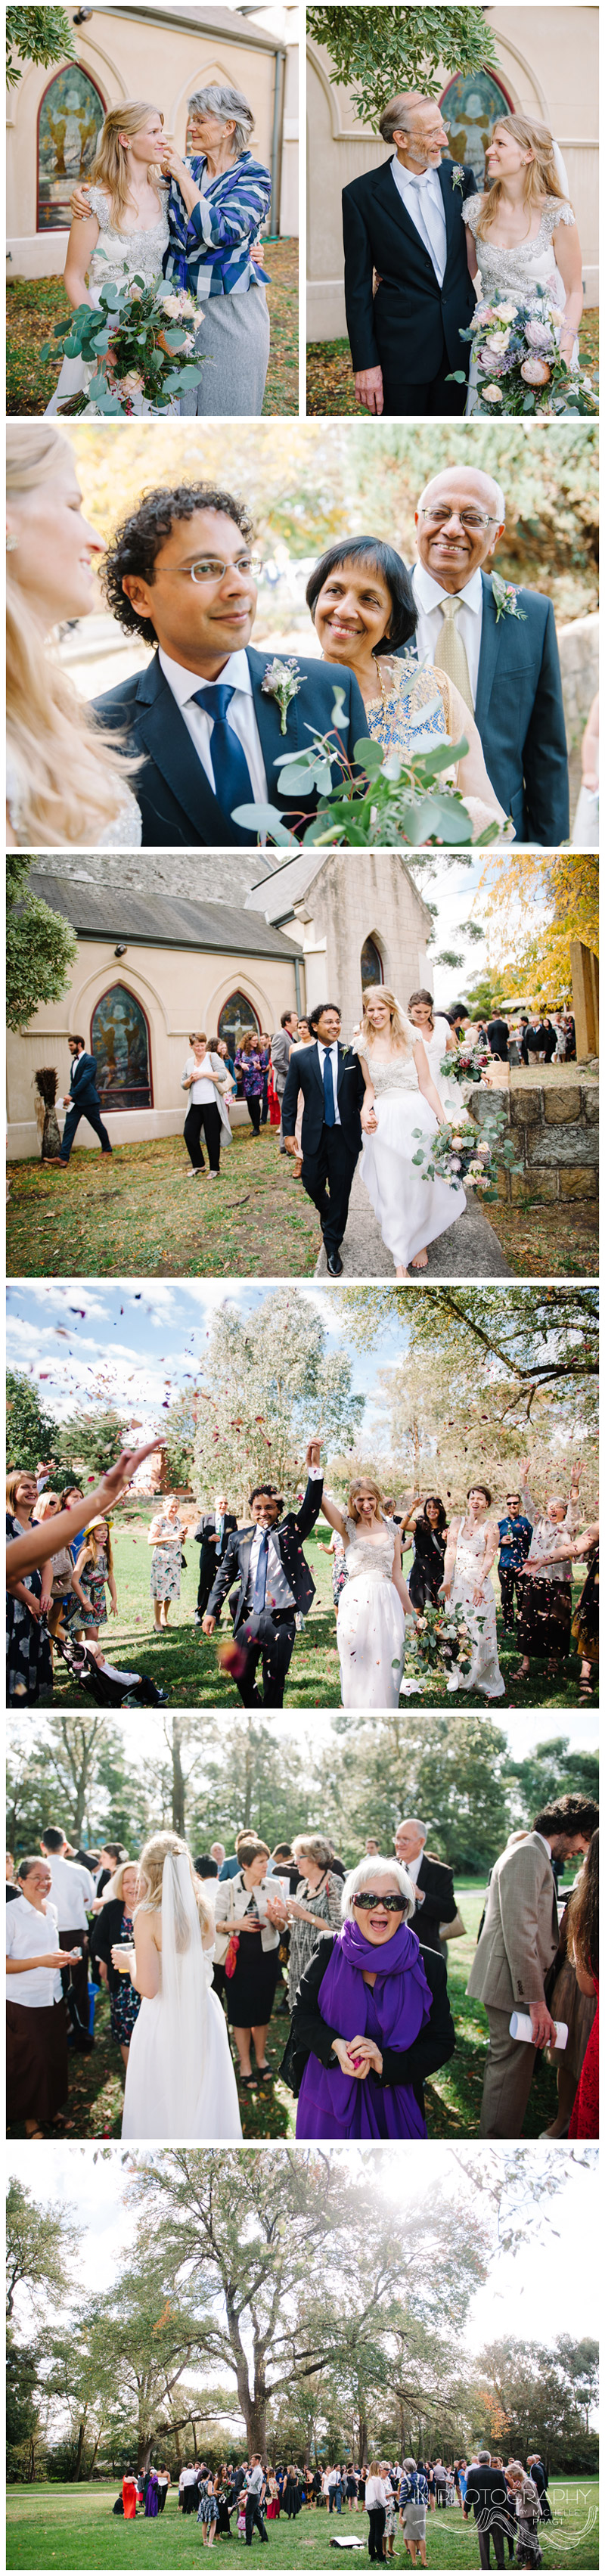 Yarra Valley garden wedding party